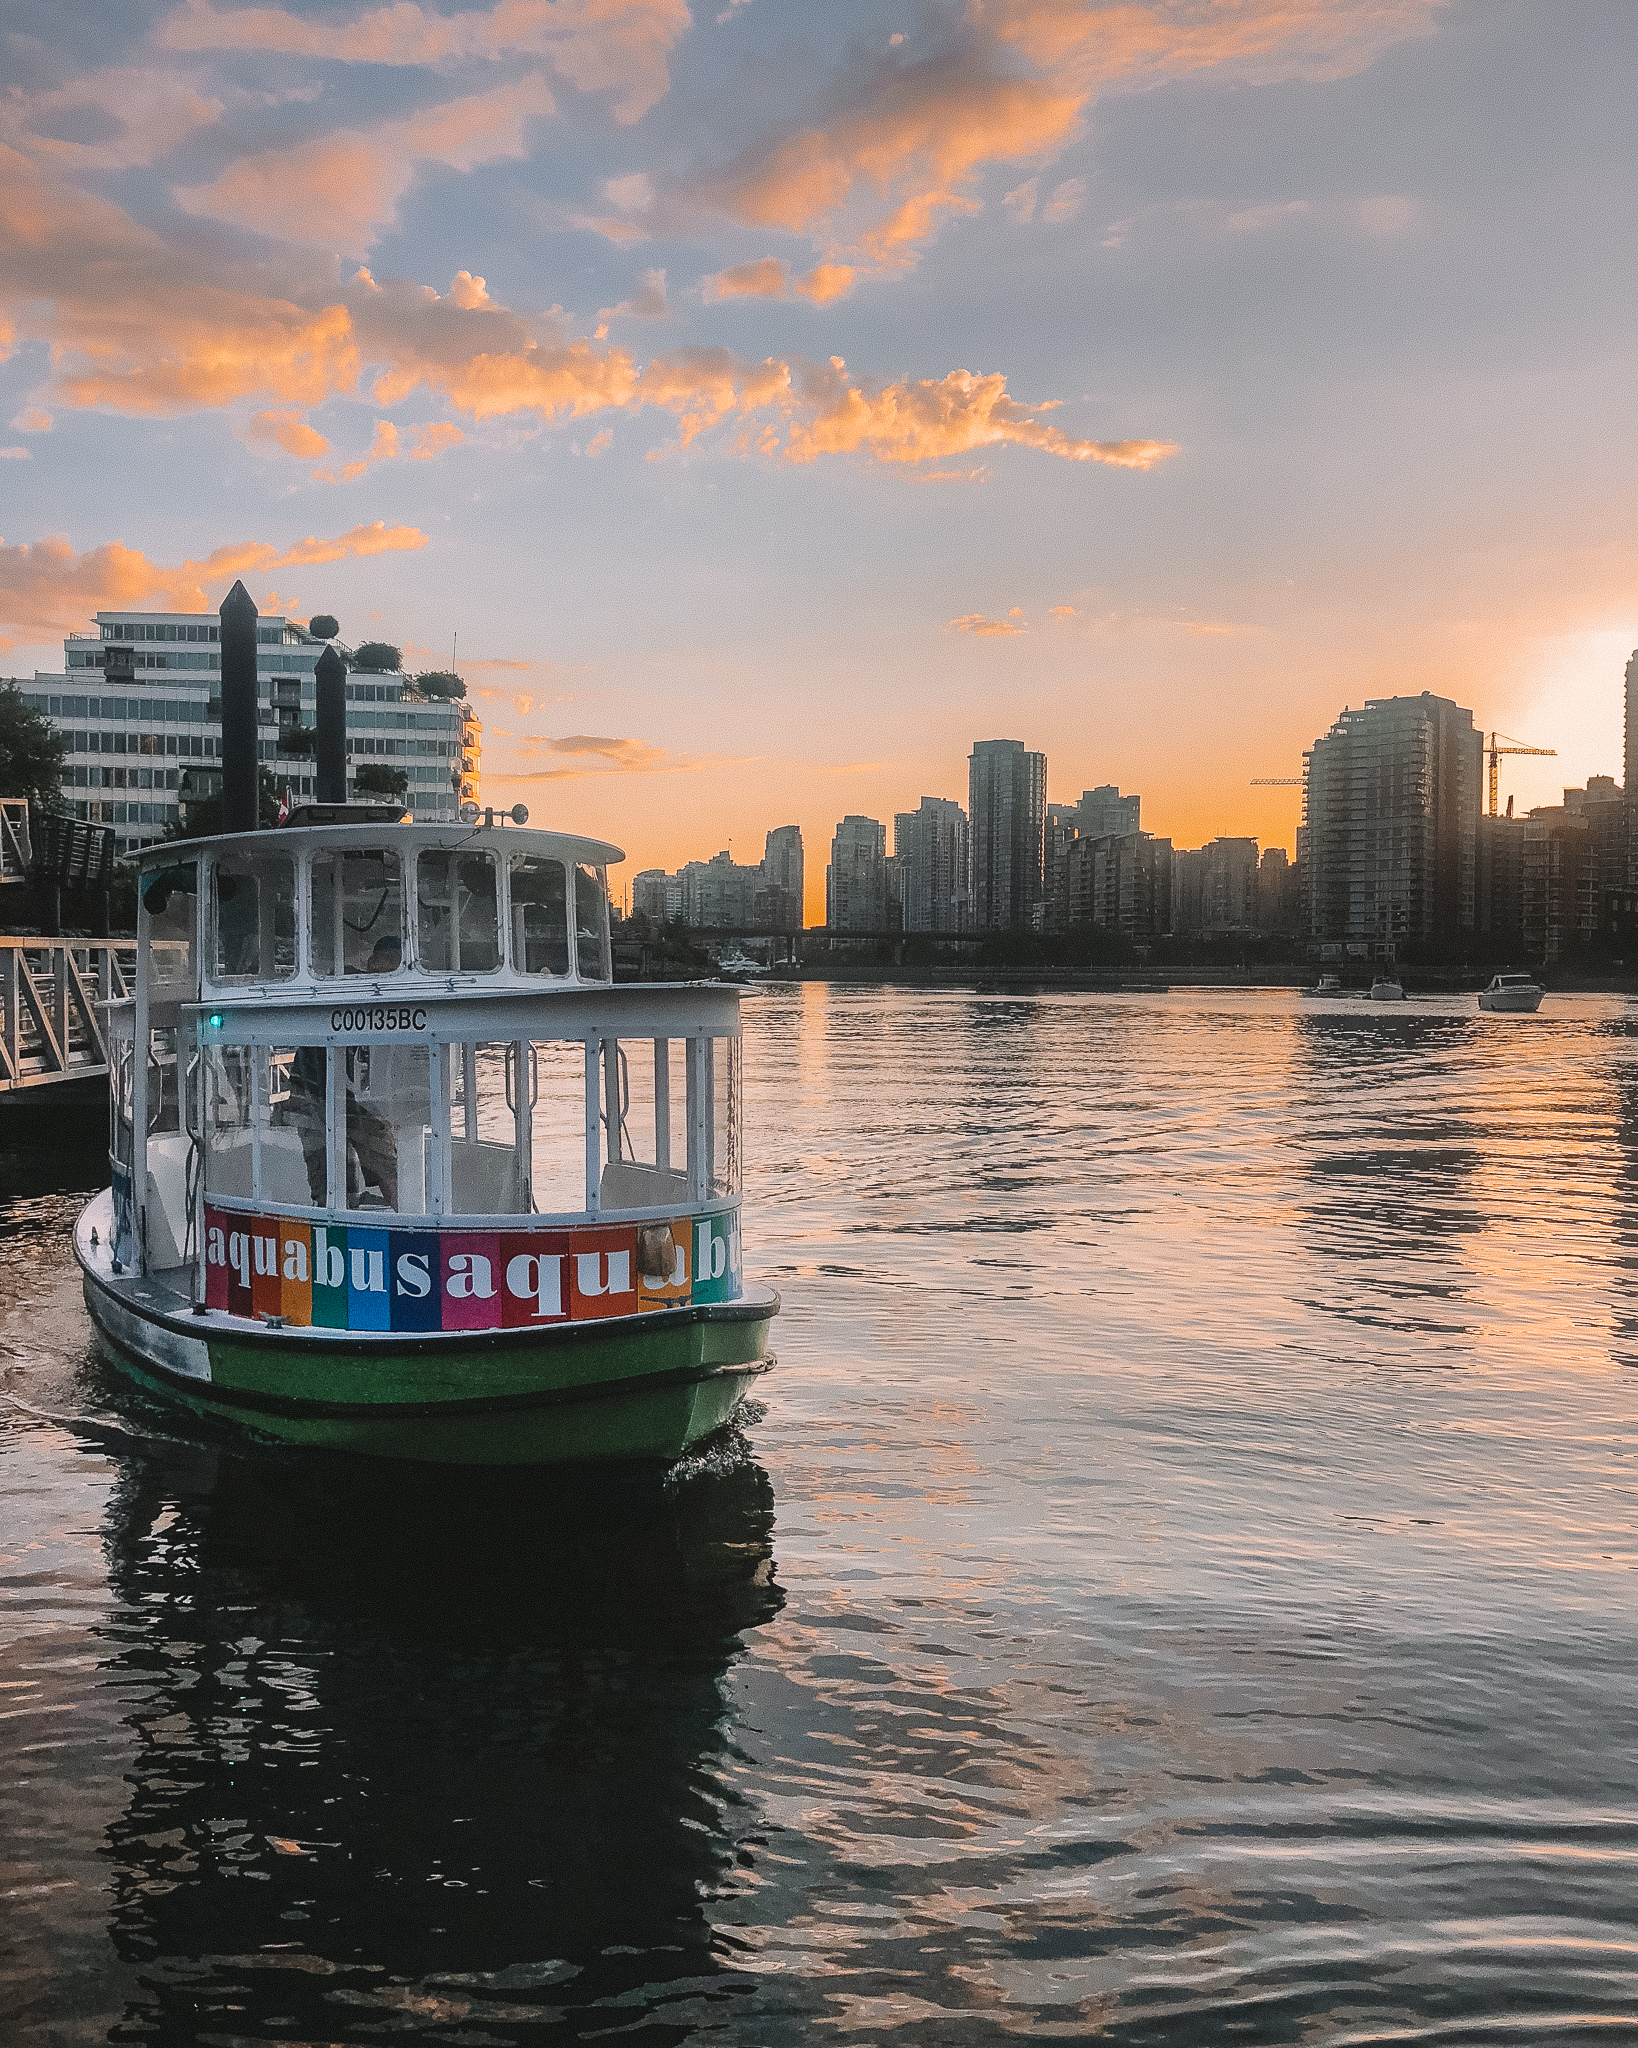 Vancouver Aquabus at sunset